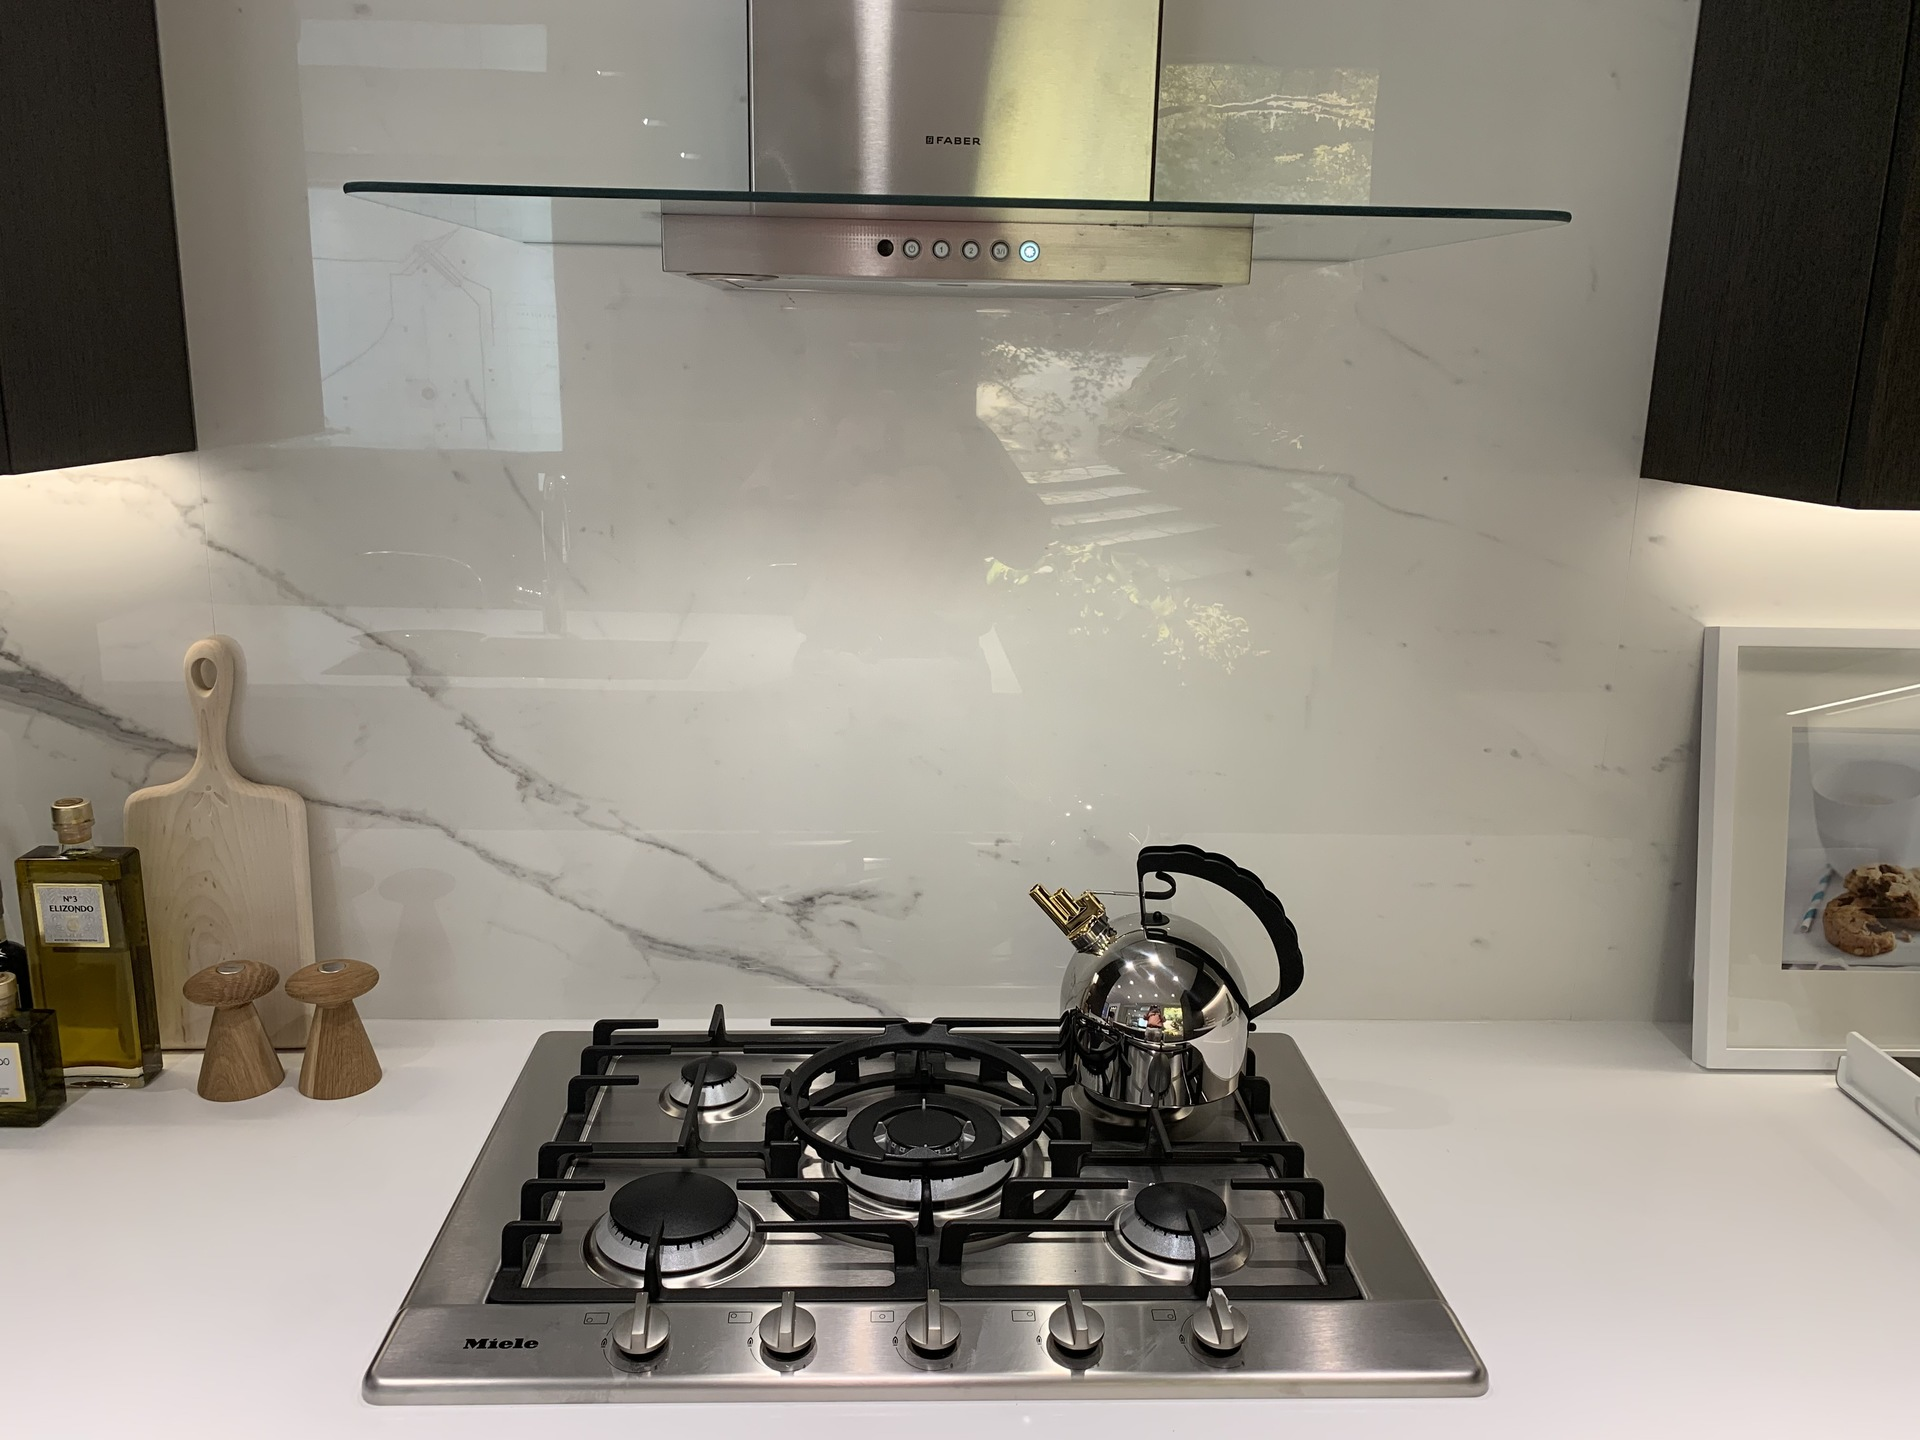 Voyce display hood fan and gas cooktop at Voyce ( Cambie Street, Cambie, Vancouver West)